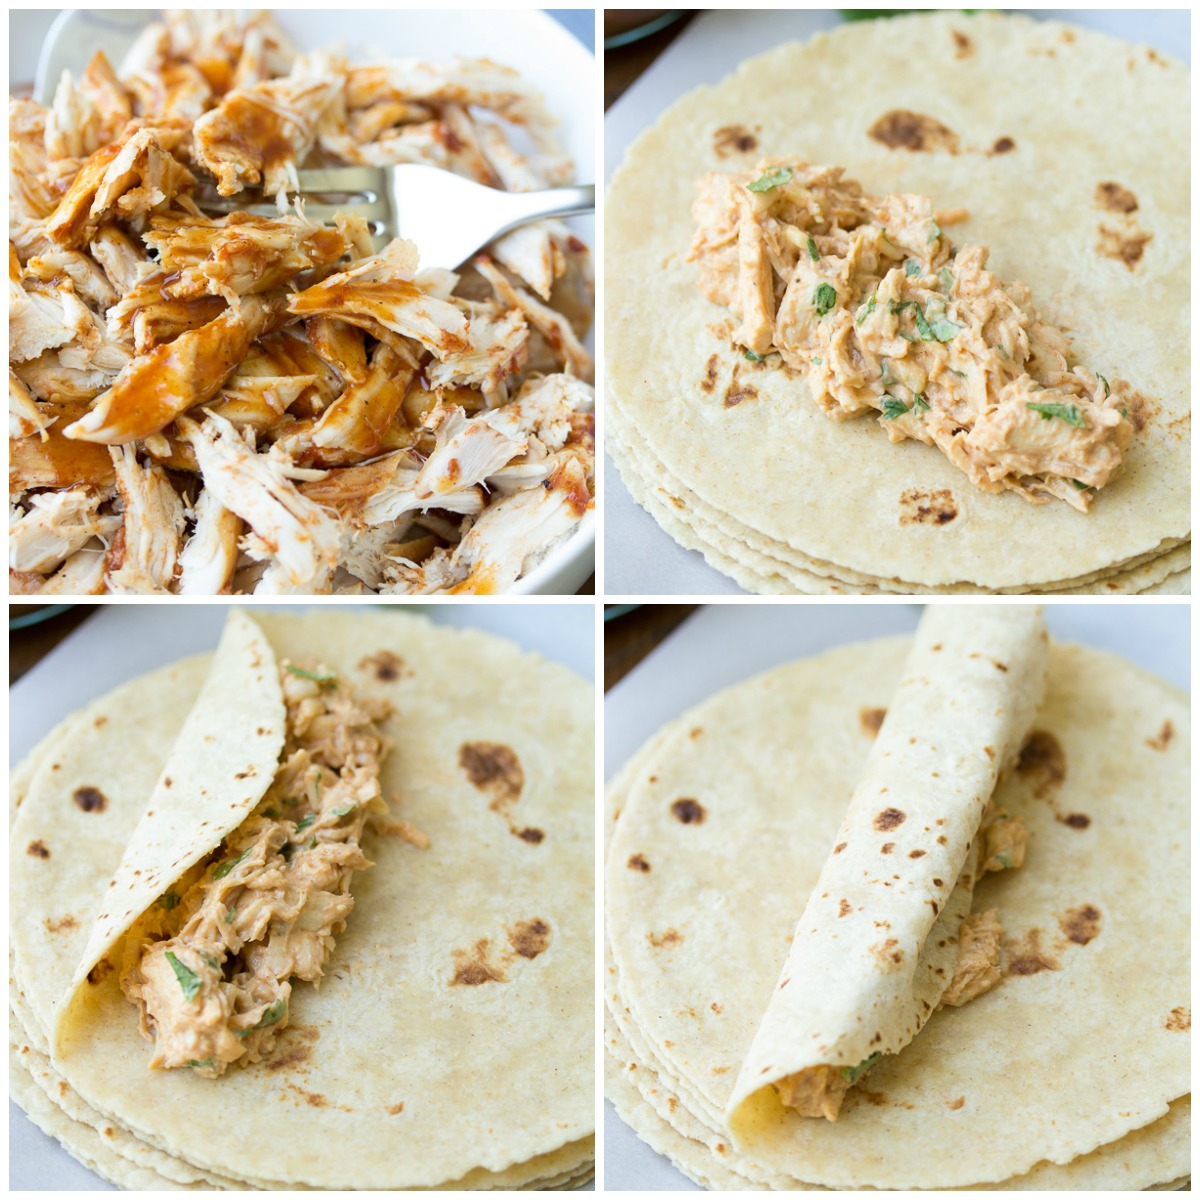 Easy Honey BBQ Slow Cooker Chicken Taquitos, filled with a creamy mixture of chicken, cheese, cream cheese, and homemade BBQ sauce! This baked chicken taquito recipe is made easier with the help of your crock pot!